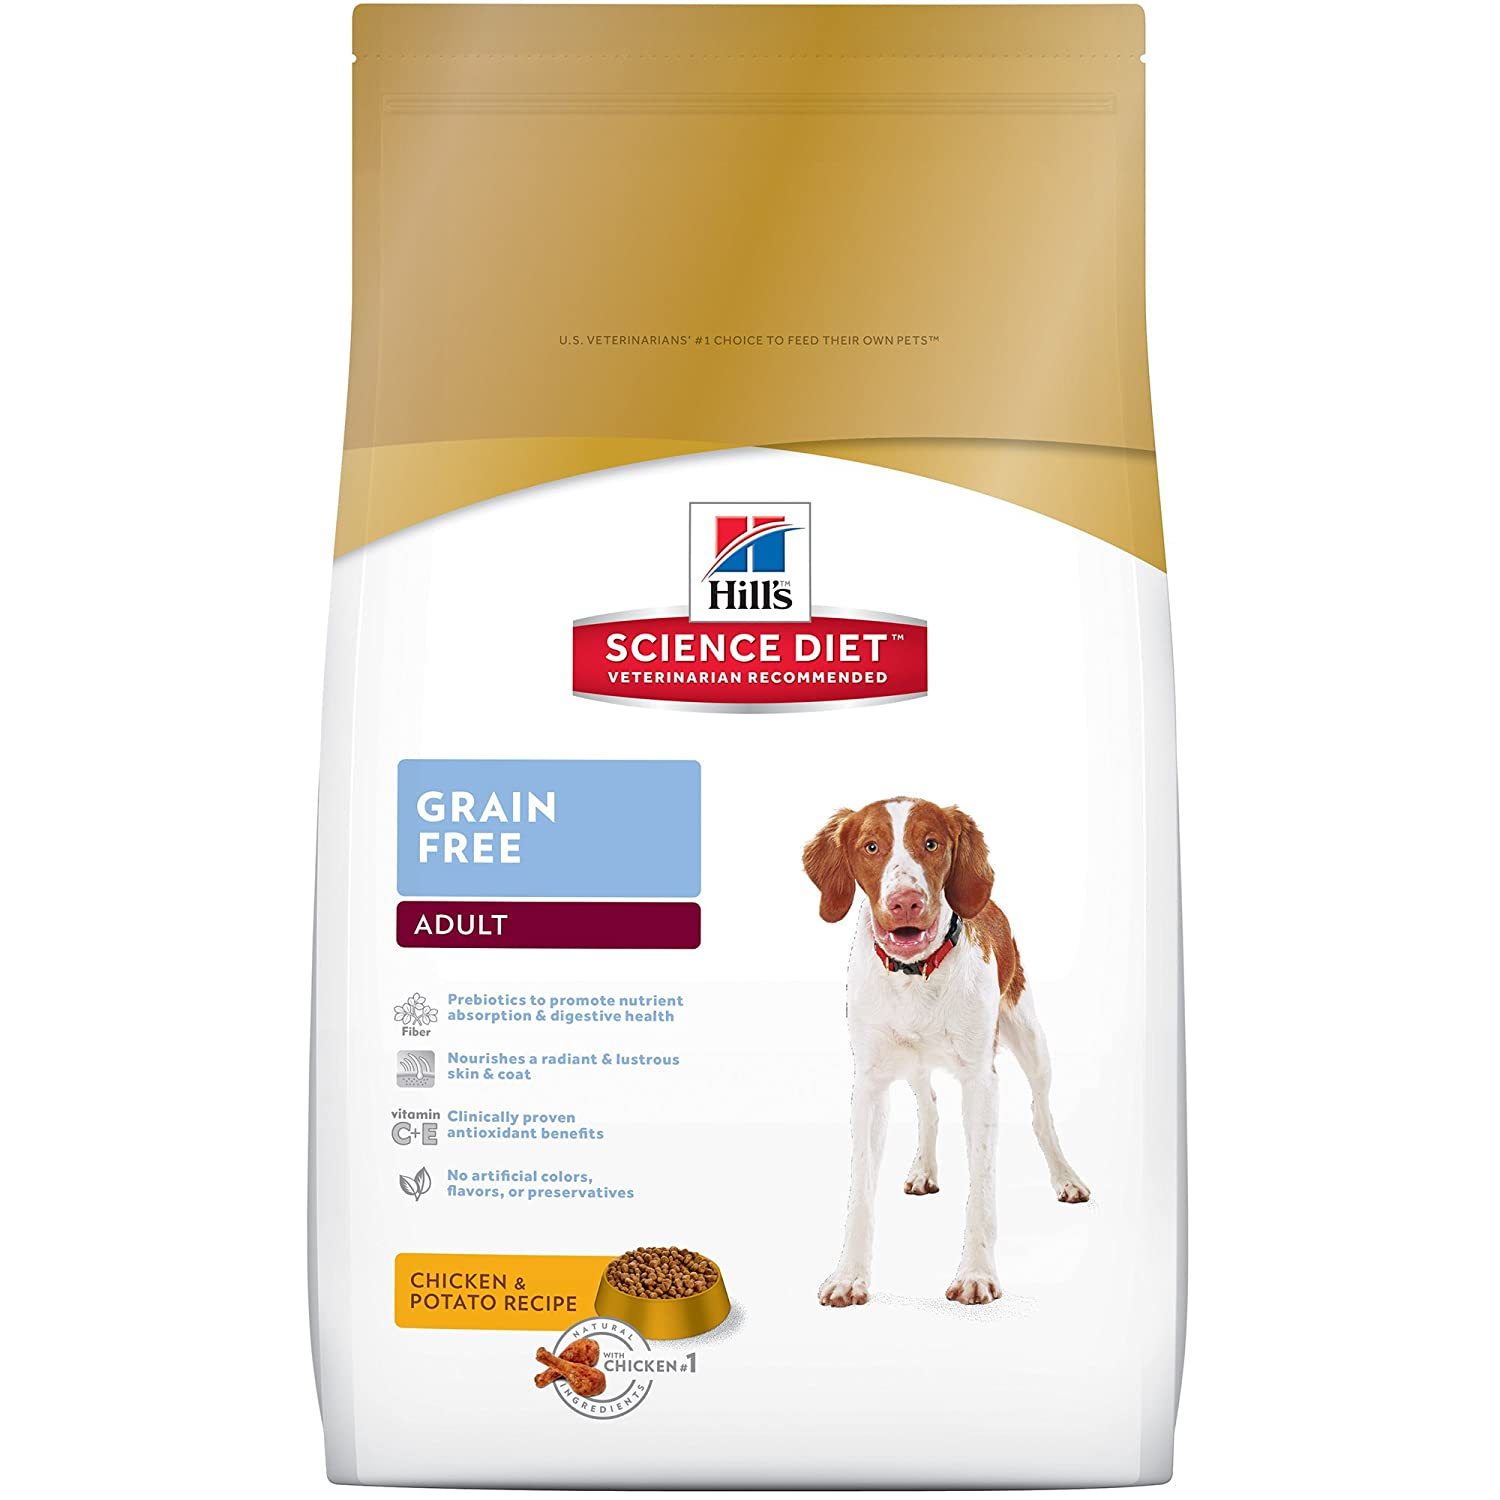 Hill's Science Diet Adult Grain-Free Dry Dog Food